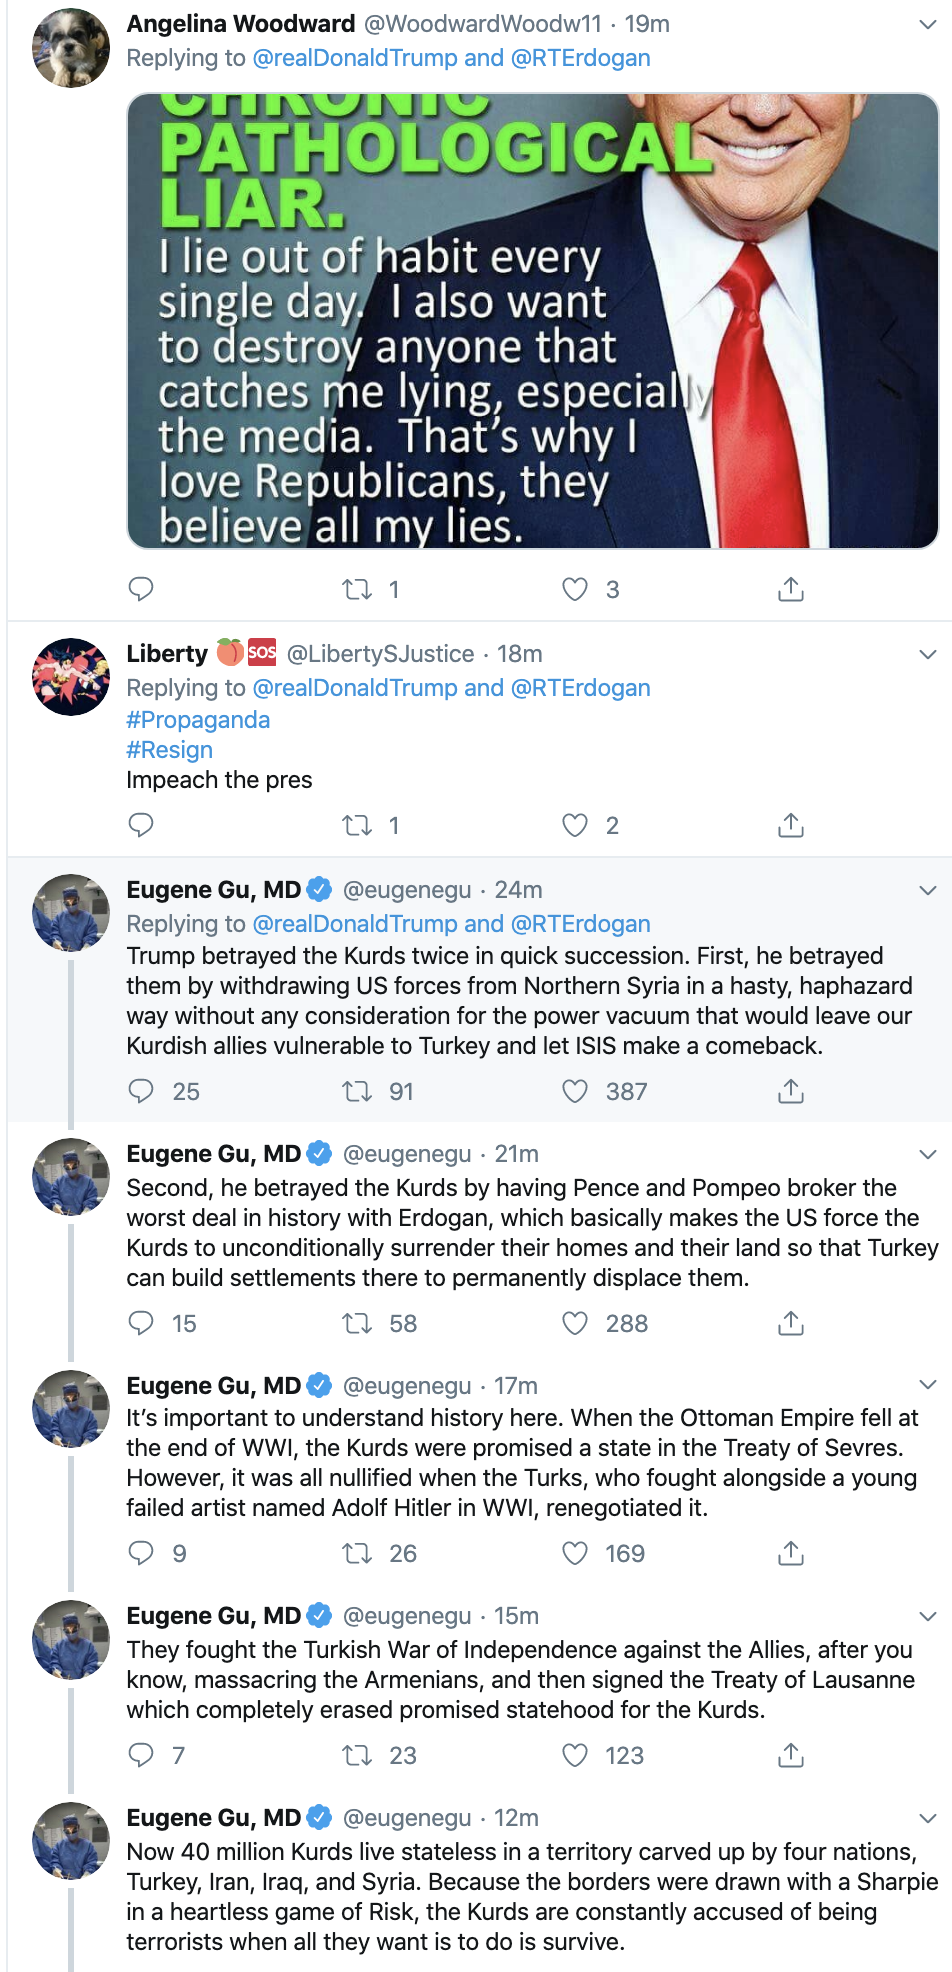 Screen-Shot-2019-10-18-at-11.13.06-AM Trump Has Impeachment Induced 5-Tweet Friday Mental Collapse Corruption Crime Donald Trump Election 2016 Election 2020 Foreign Policy Hate Speech Human Rights Impeachment Mass Shootings National Security Politics Russia Scandal Social Media Top Stories